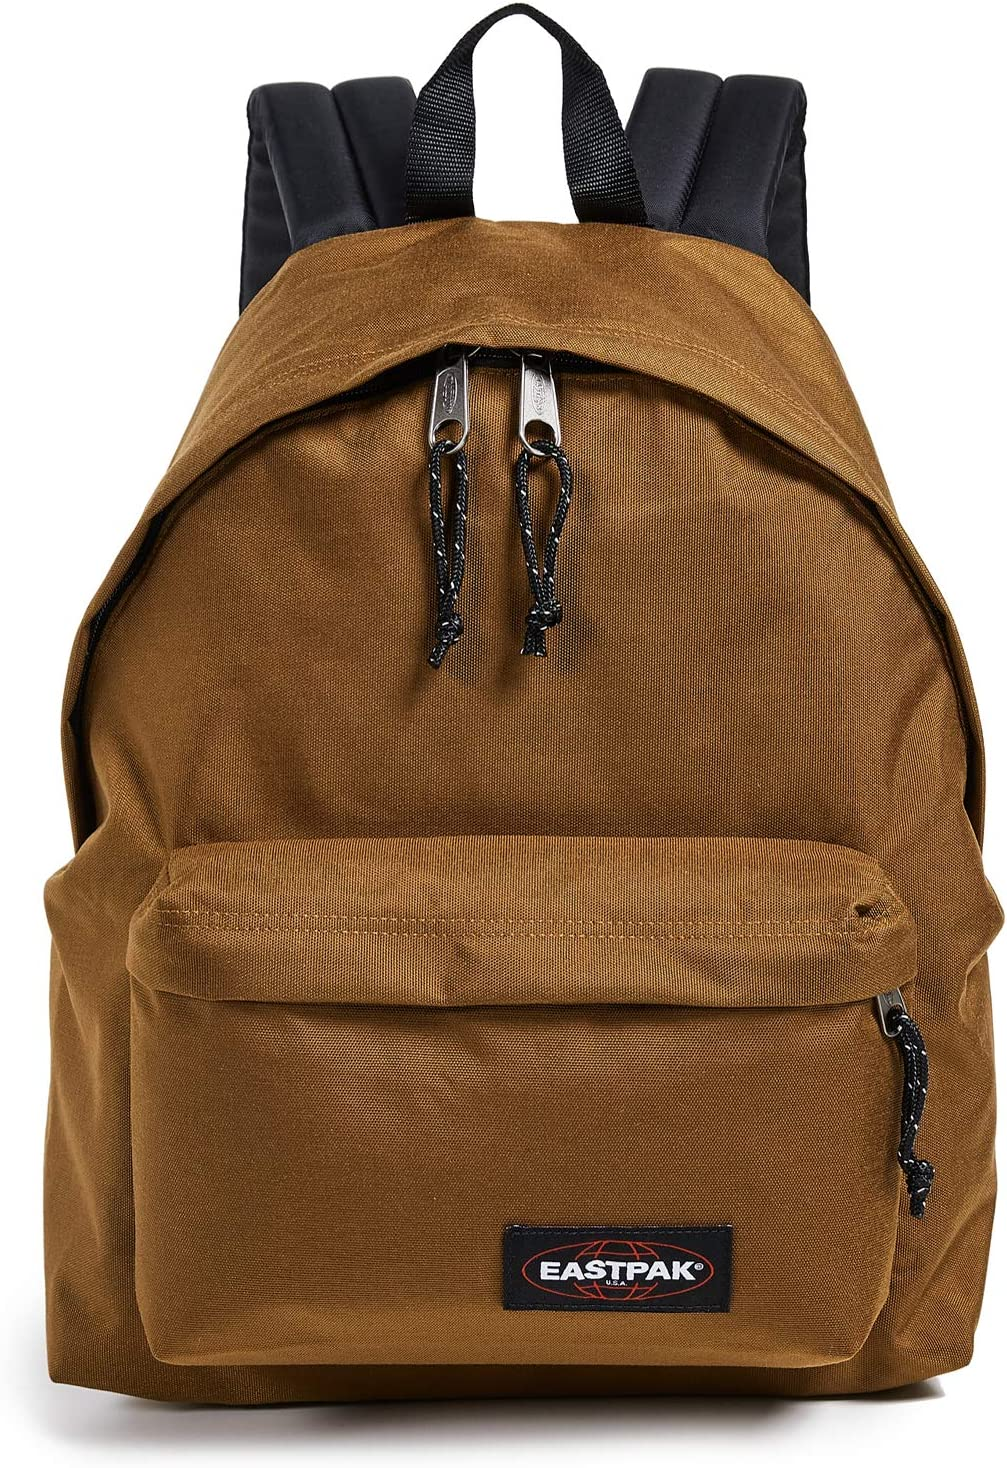 Eastpak Men's Padded Pak'r Backpack, Wood Brown, One Size